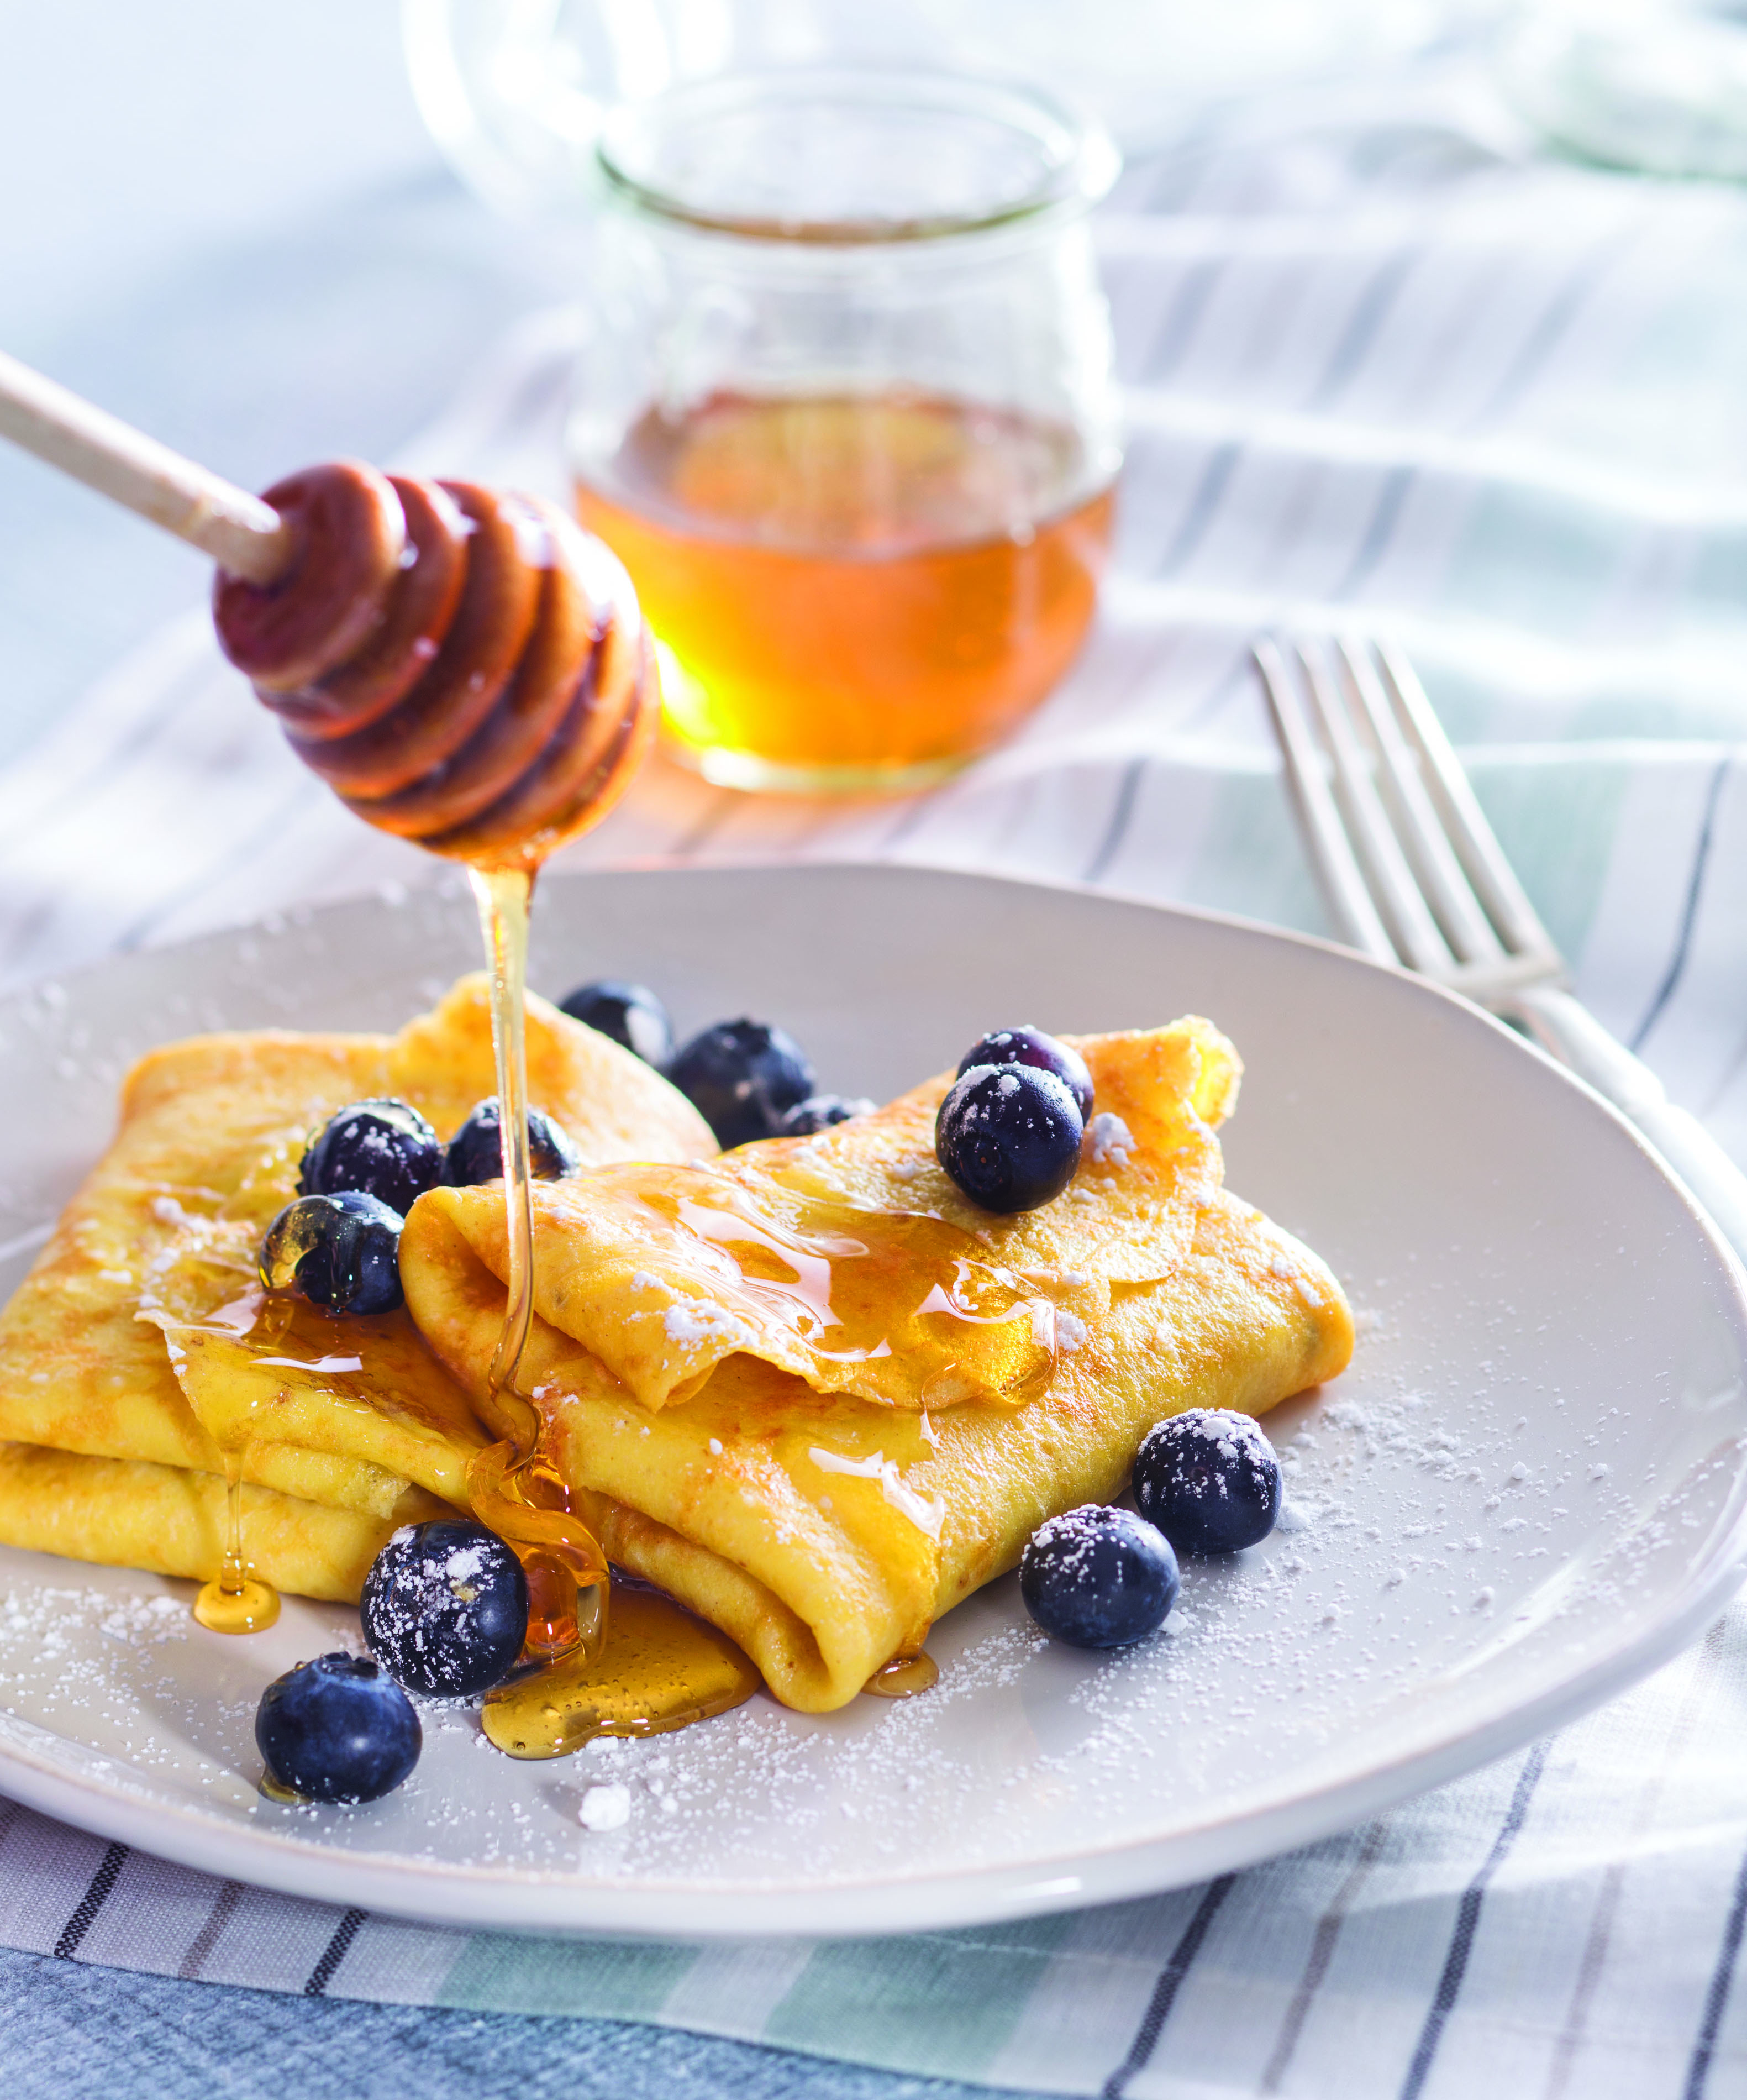 Photo of plated blueberry blintzes with honey, taken for the National Honey Board.